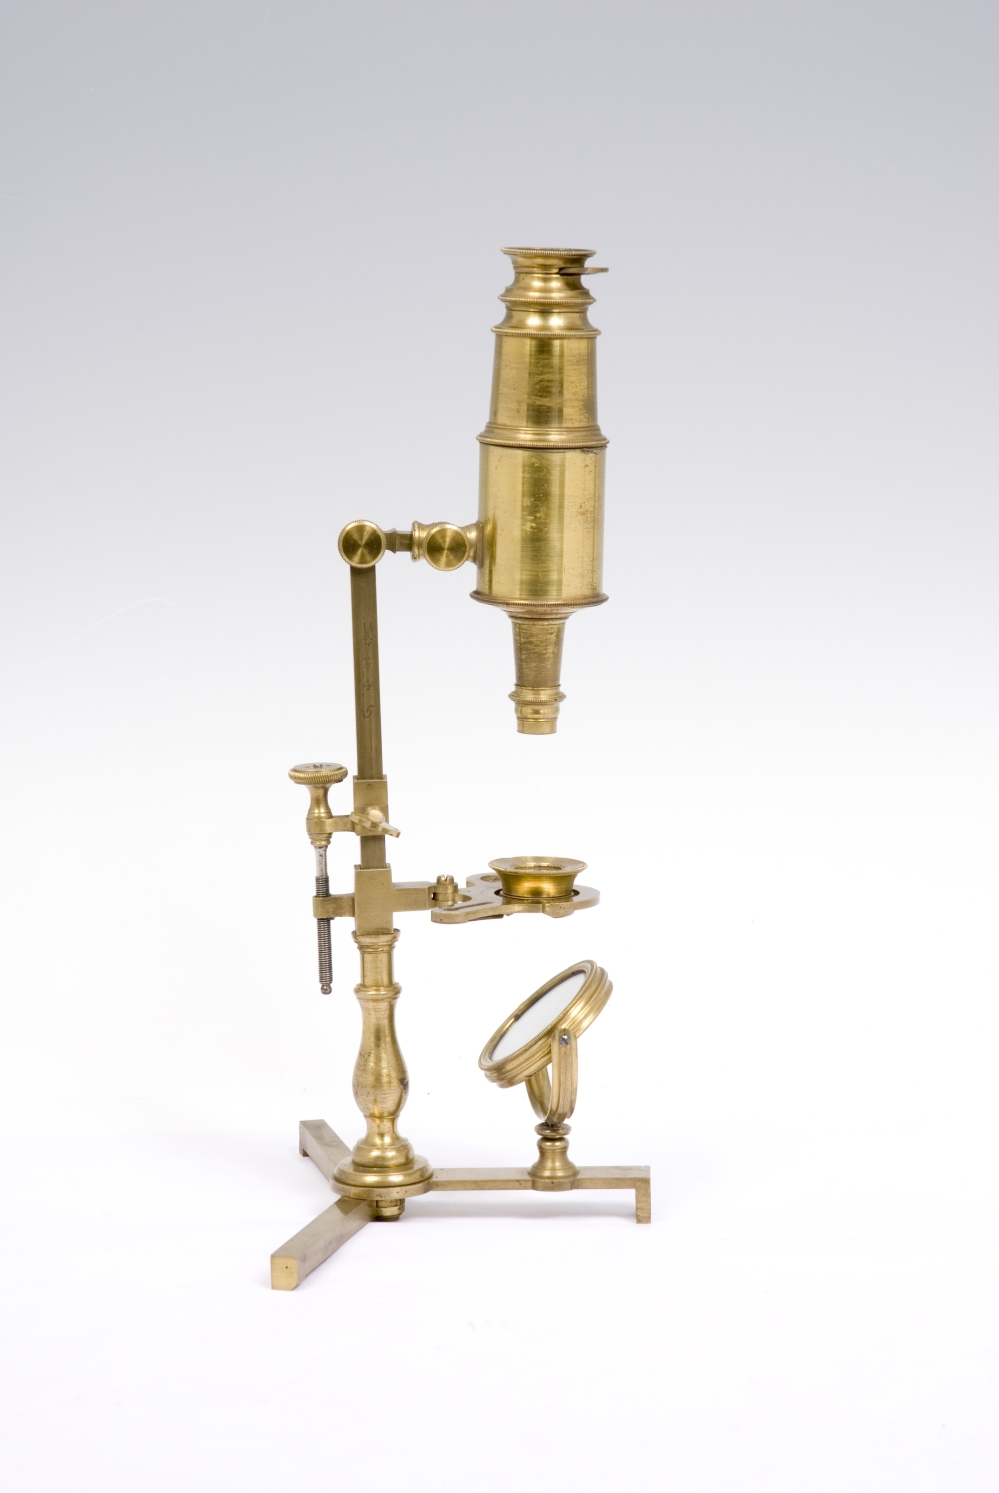 preview image for Compound  Microscope, English, c. 1770